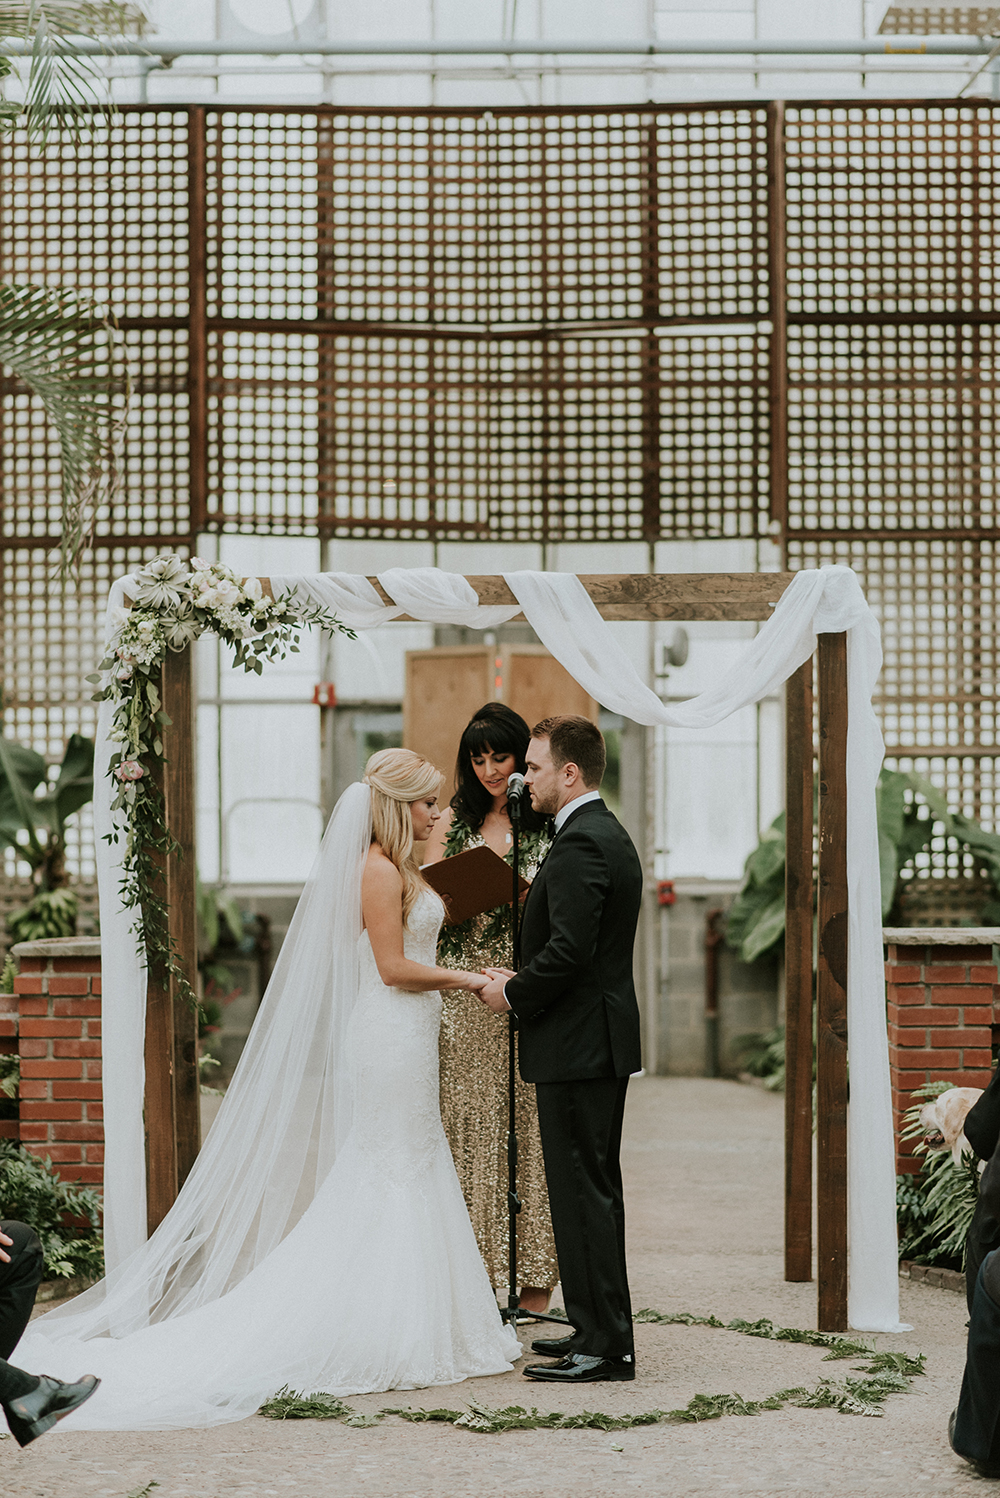 wedding ceremonies - photo by M2 Photography https://ruffledblog.com/black-tie-philadelphia-wedding-with-a-boho-twist